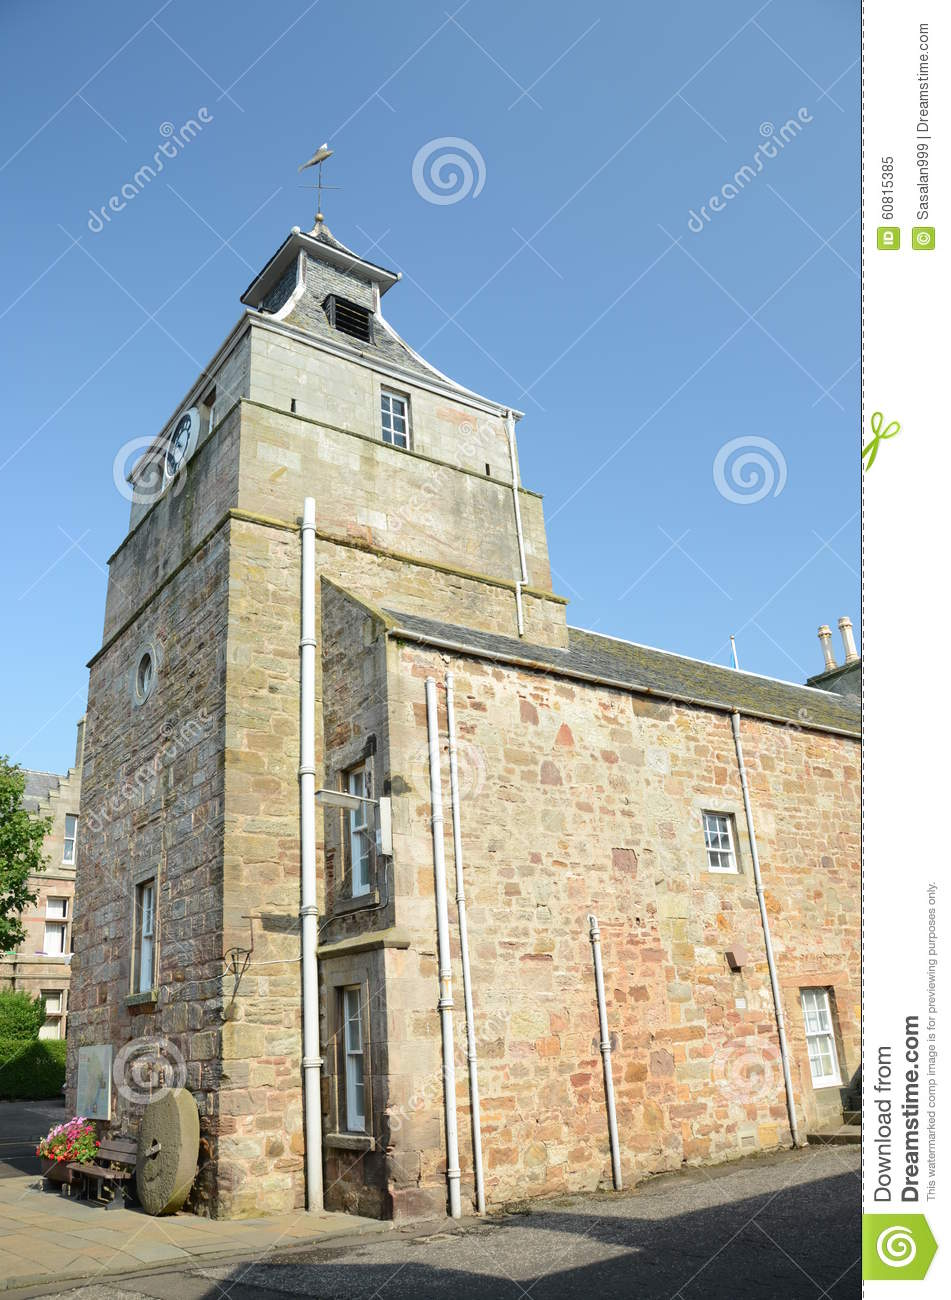 Medieval Building Stock Photo - Image: 60815385